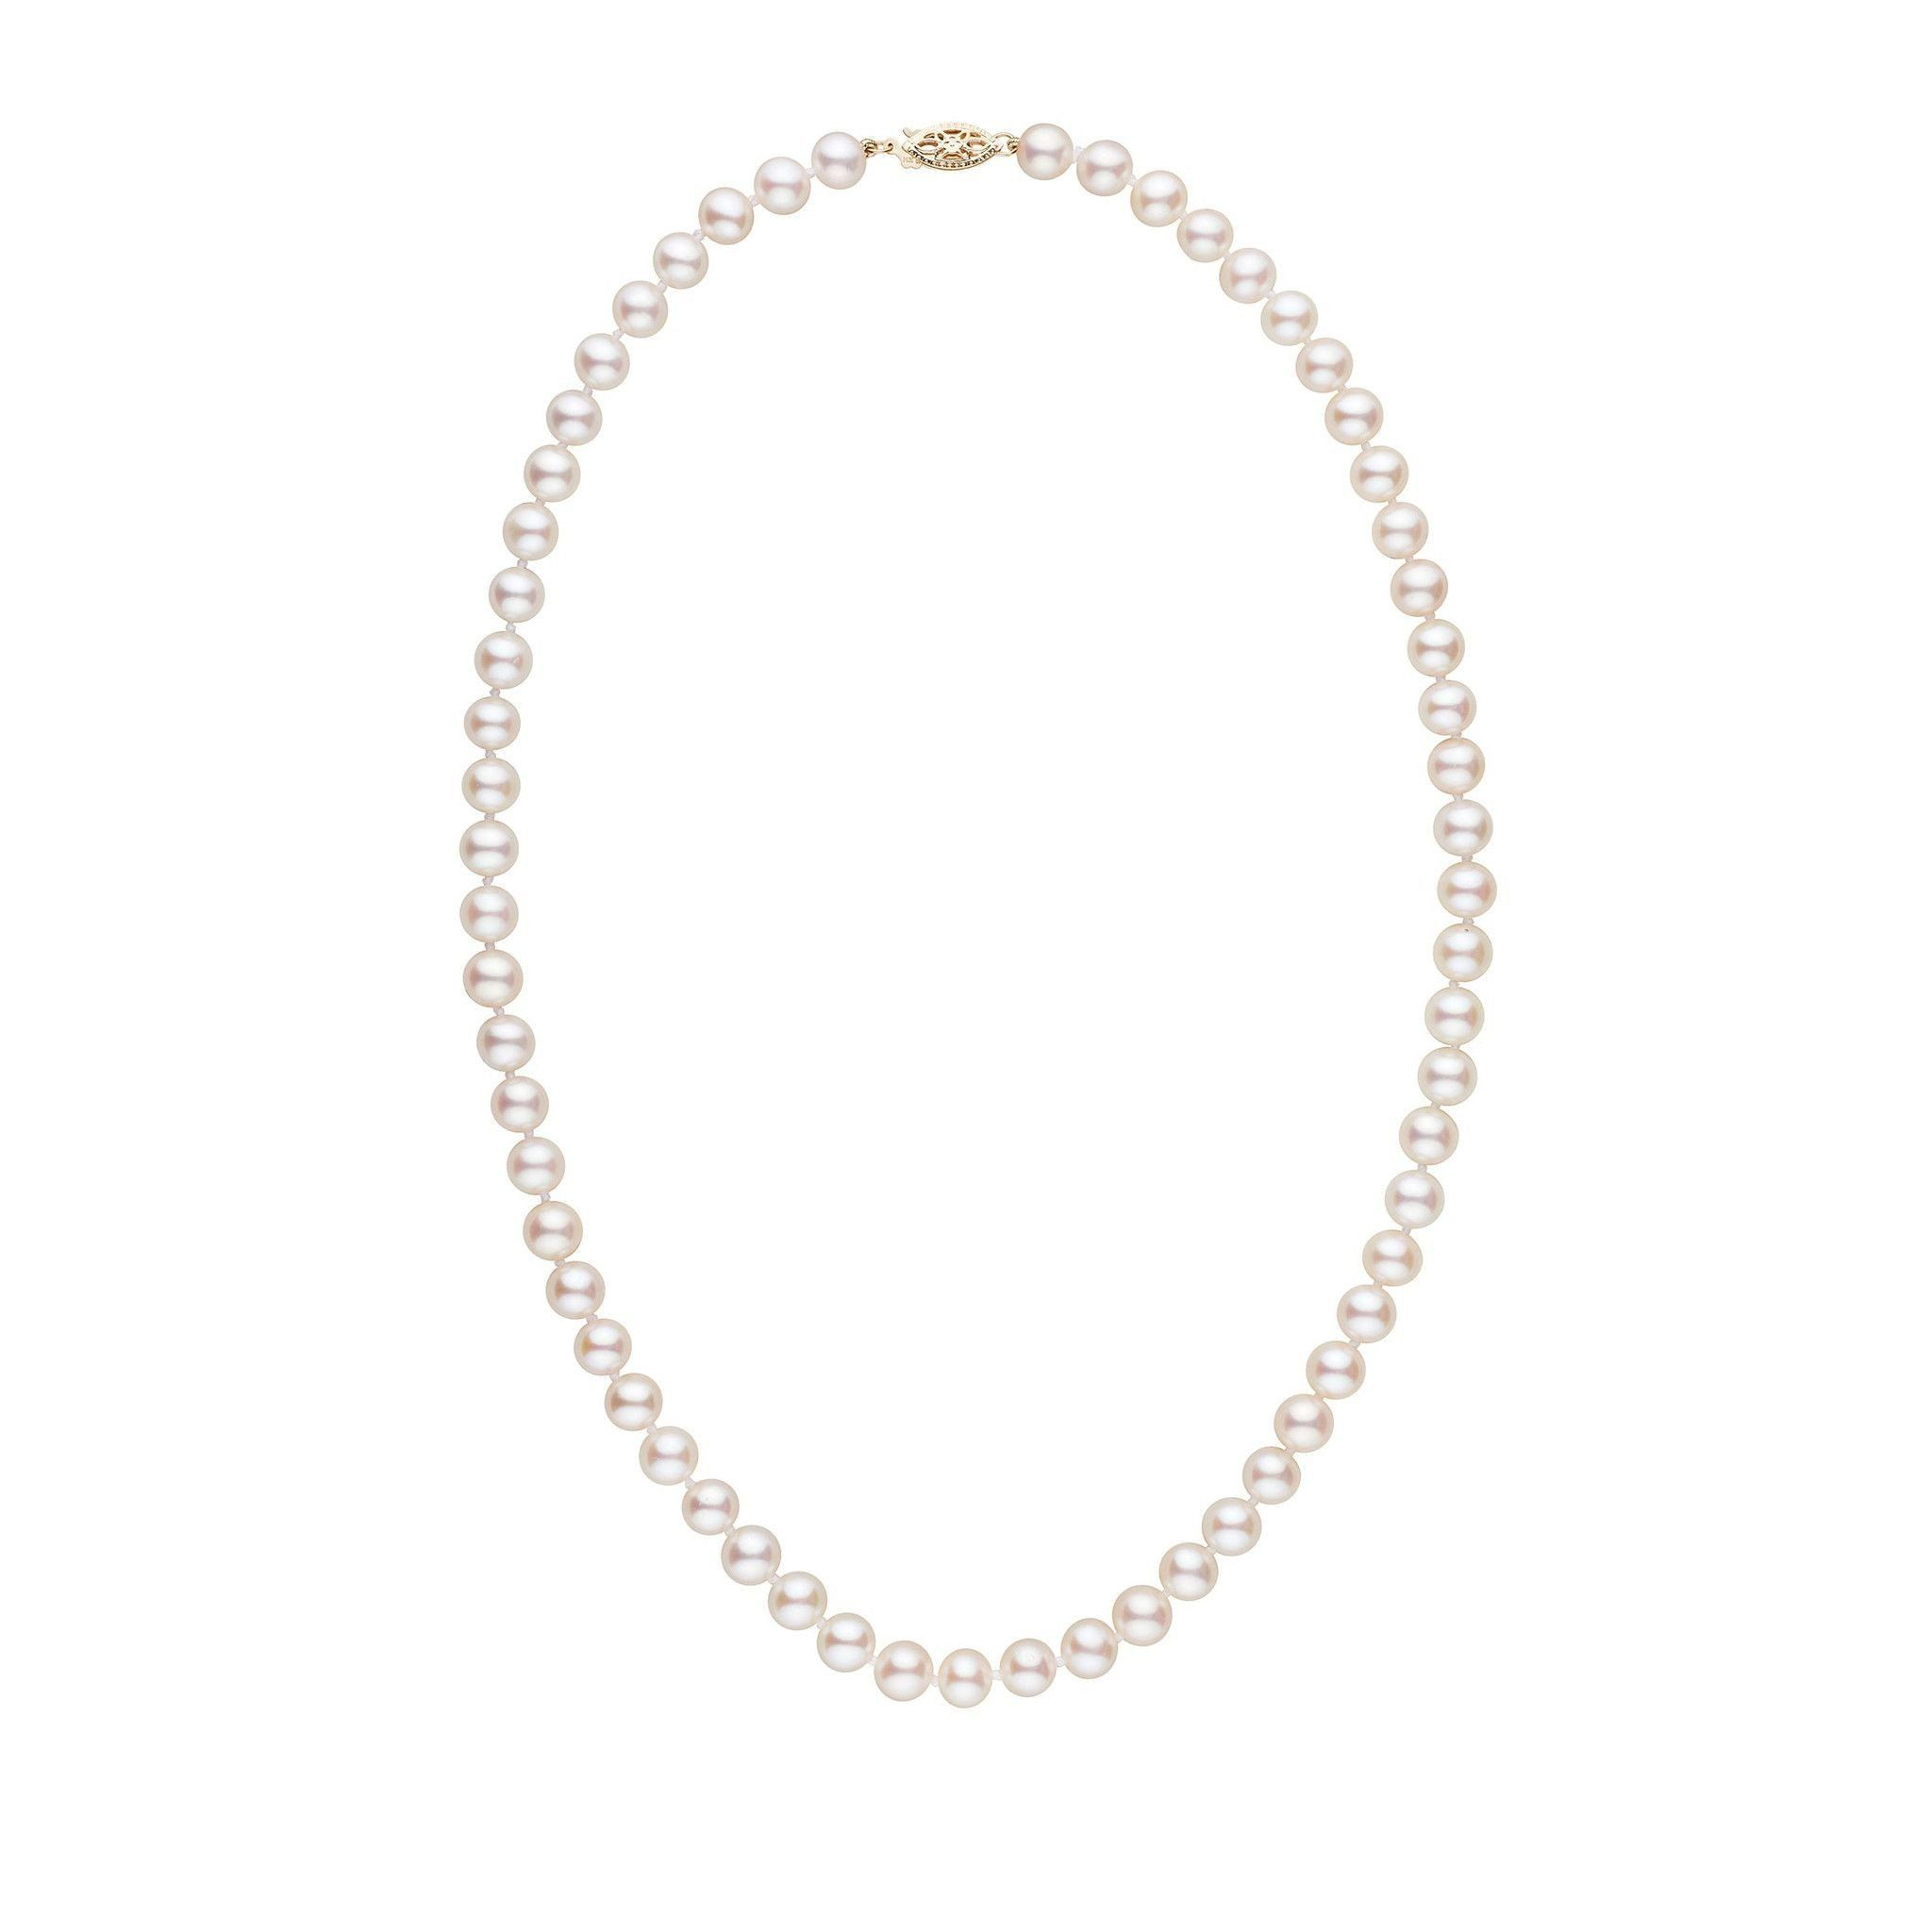 6.5-7.0 mm 18 Inch AAA White Freshwater Pearl Necklace